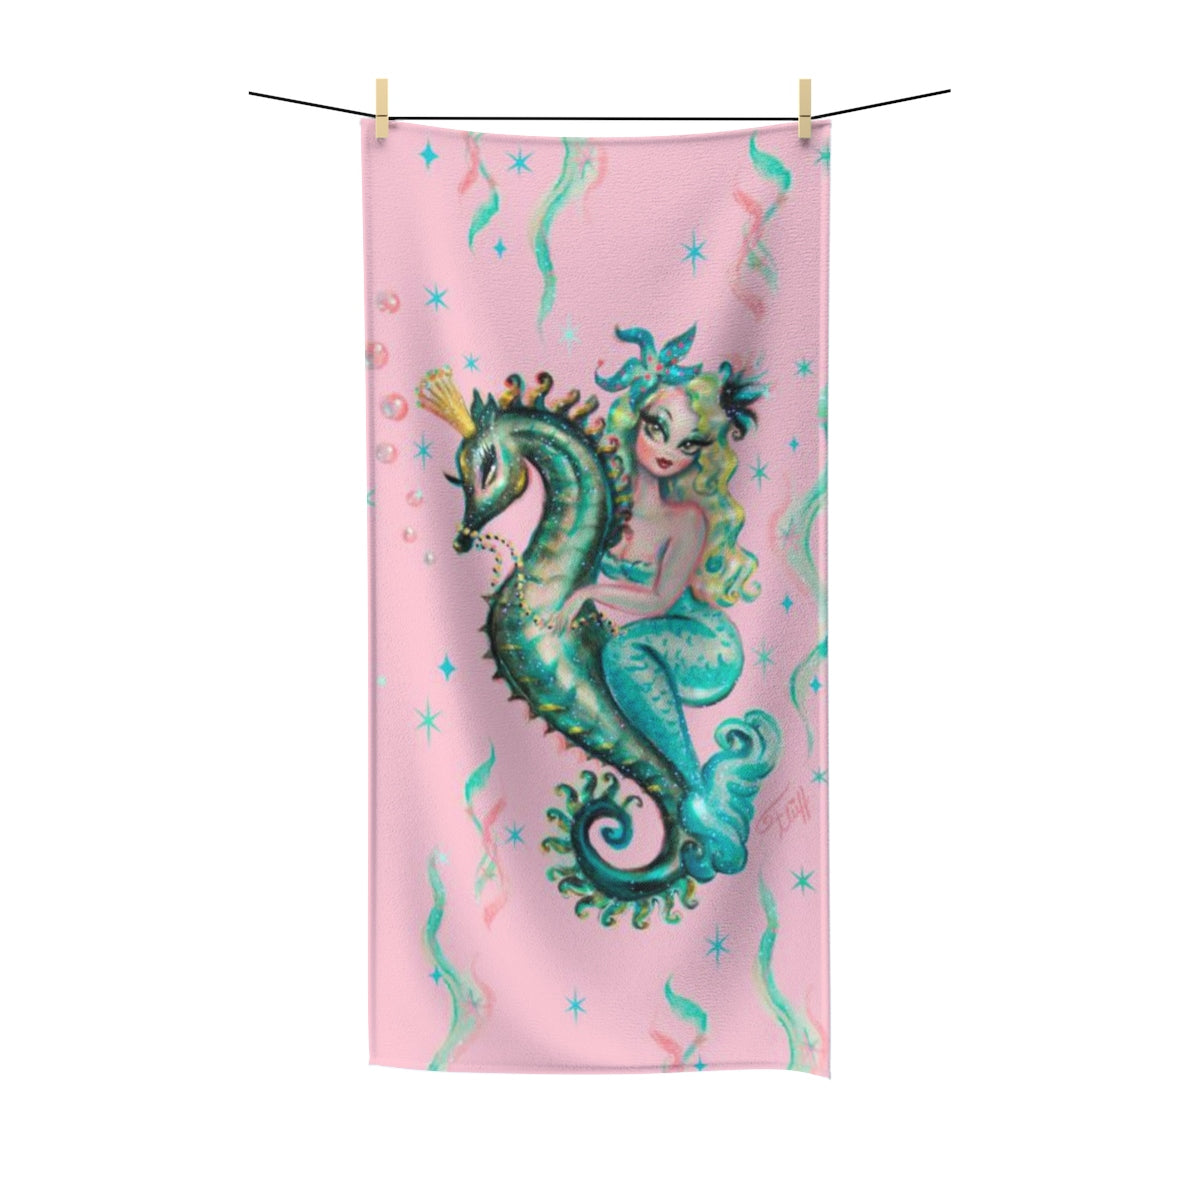 Blue Mermaid Riding a Seahorse Prince on Pink • Towel